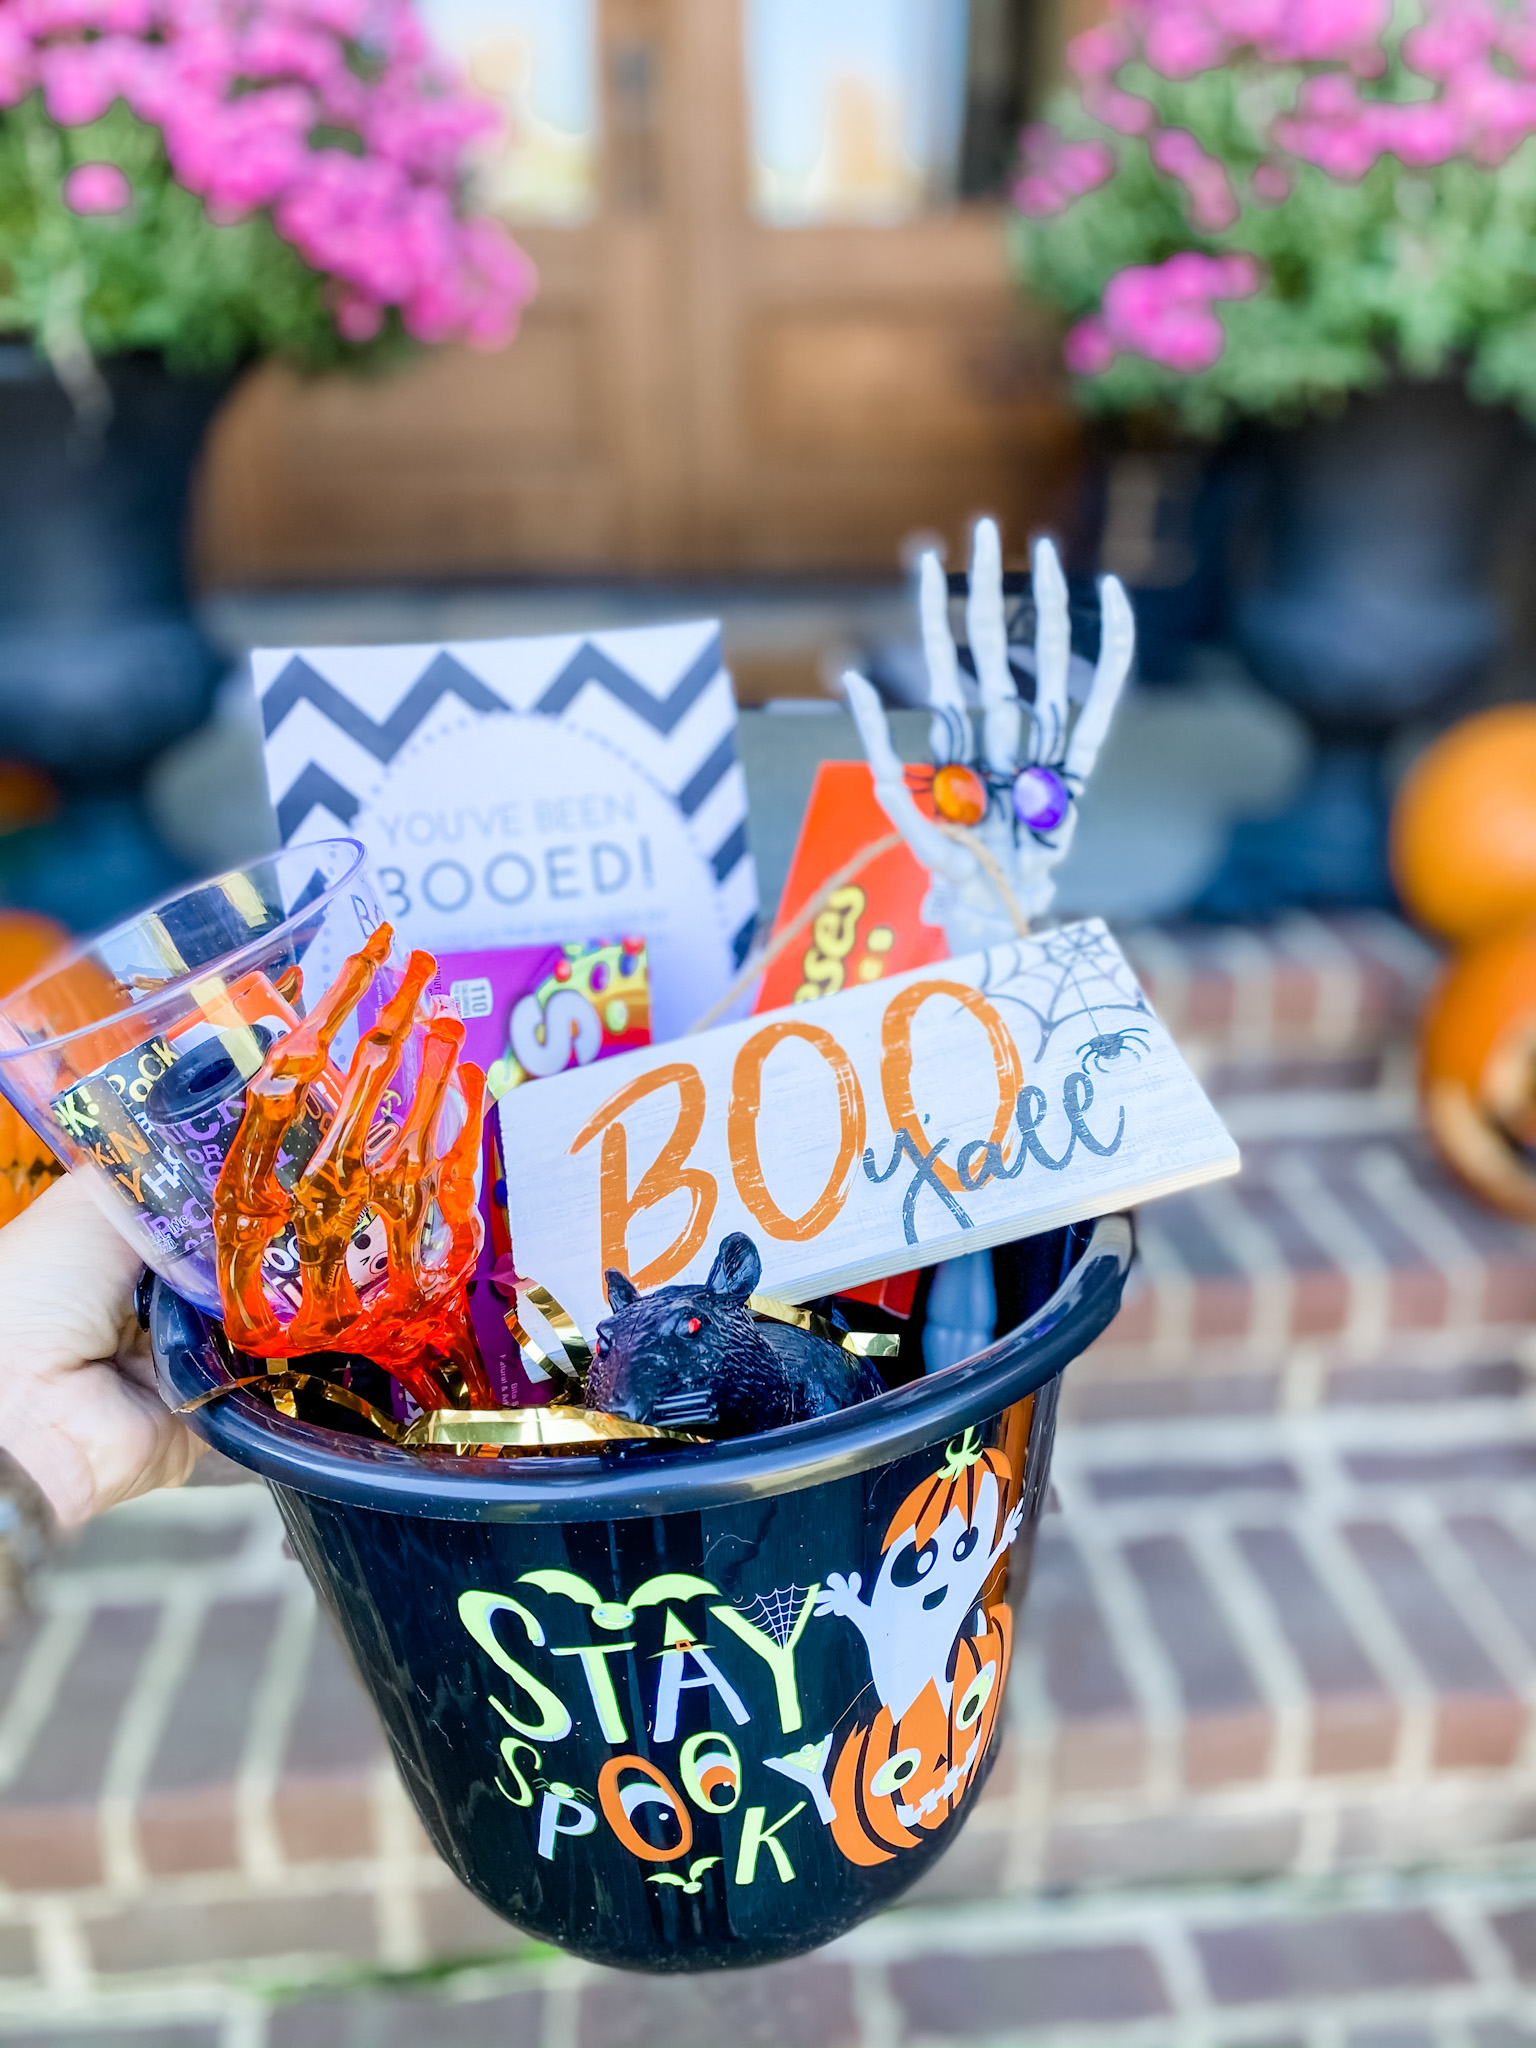 SPREAD SOME HALLOWEEN CHEER WITH BOO BUCKETS!